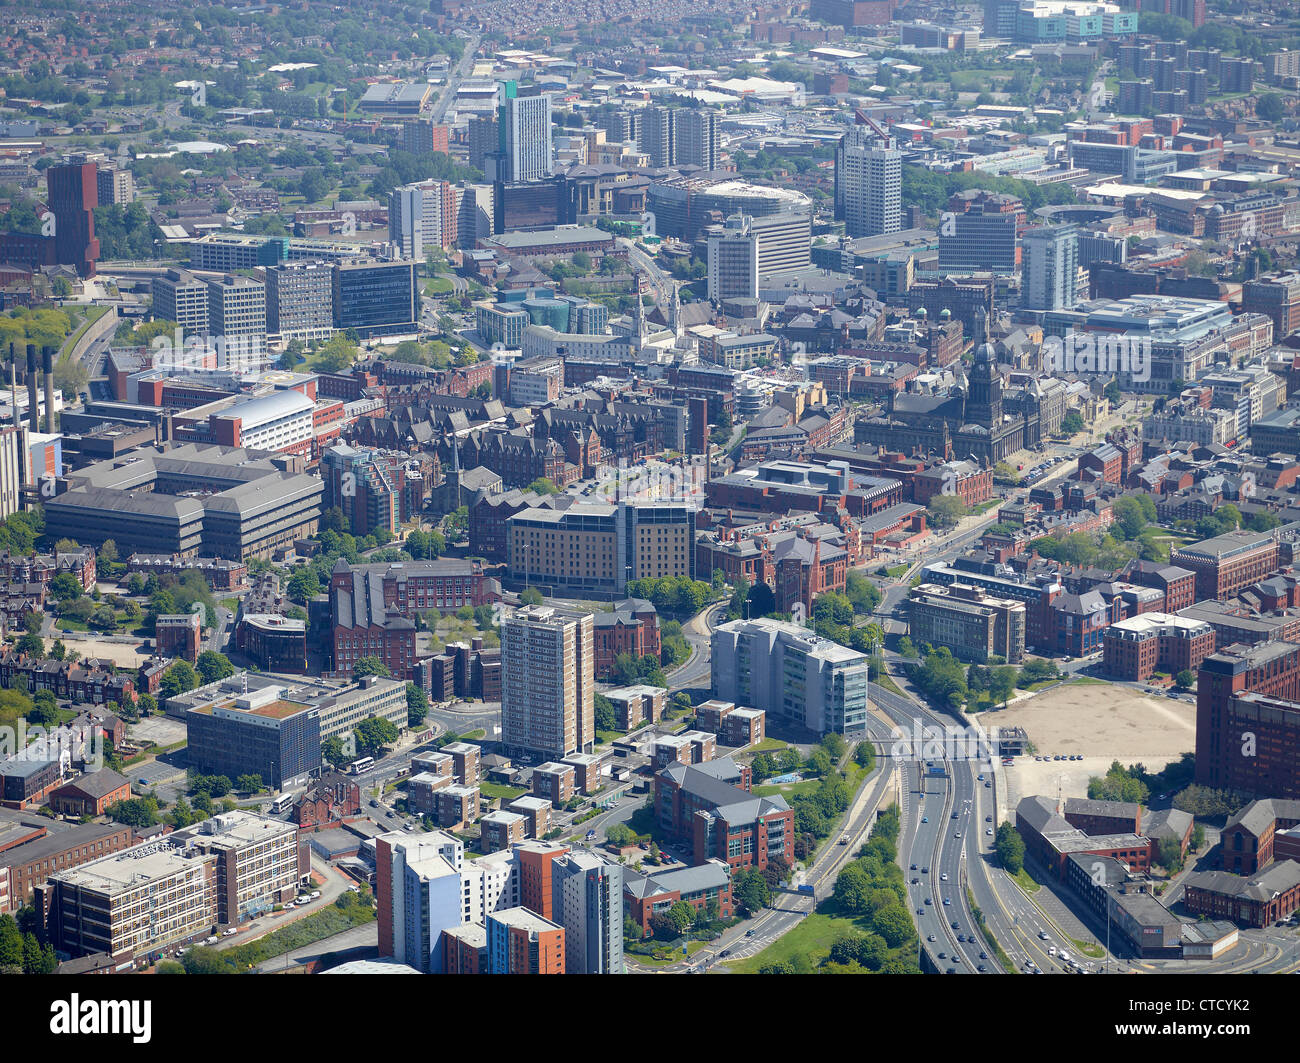 Leeds City Centre from the air, summer 2012. West Yorkshire, Northern England showing the civic, medical and university Stock Photo